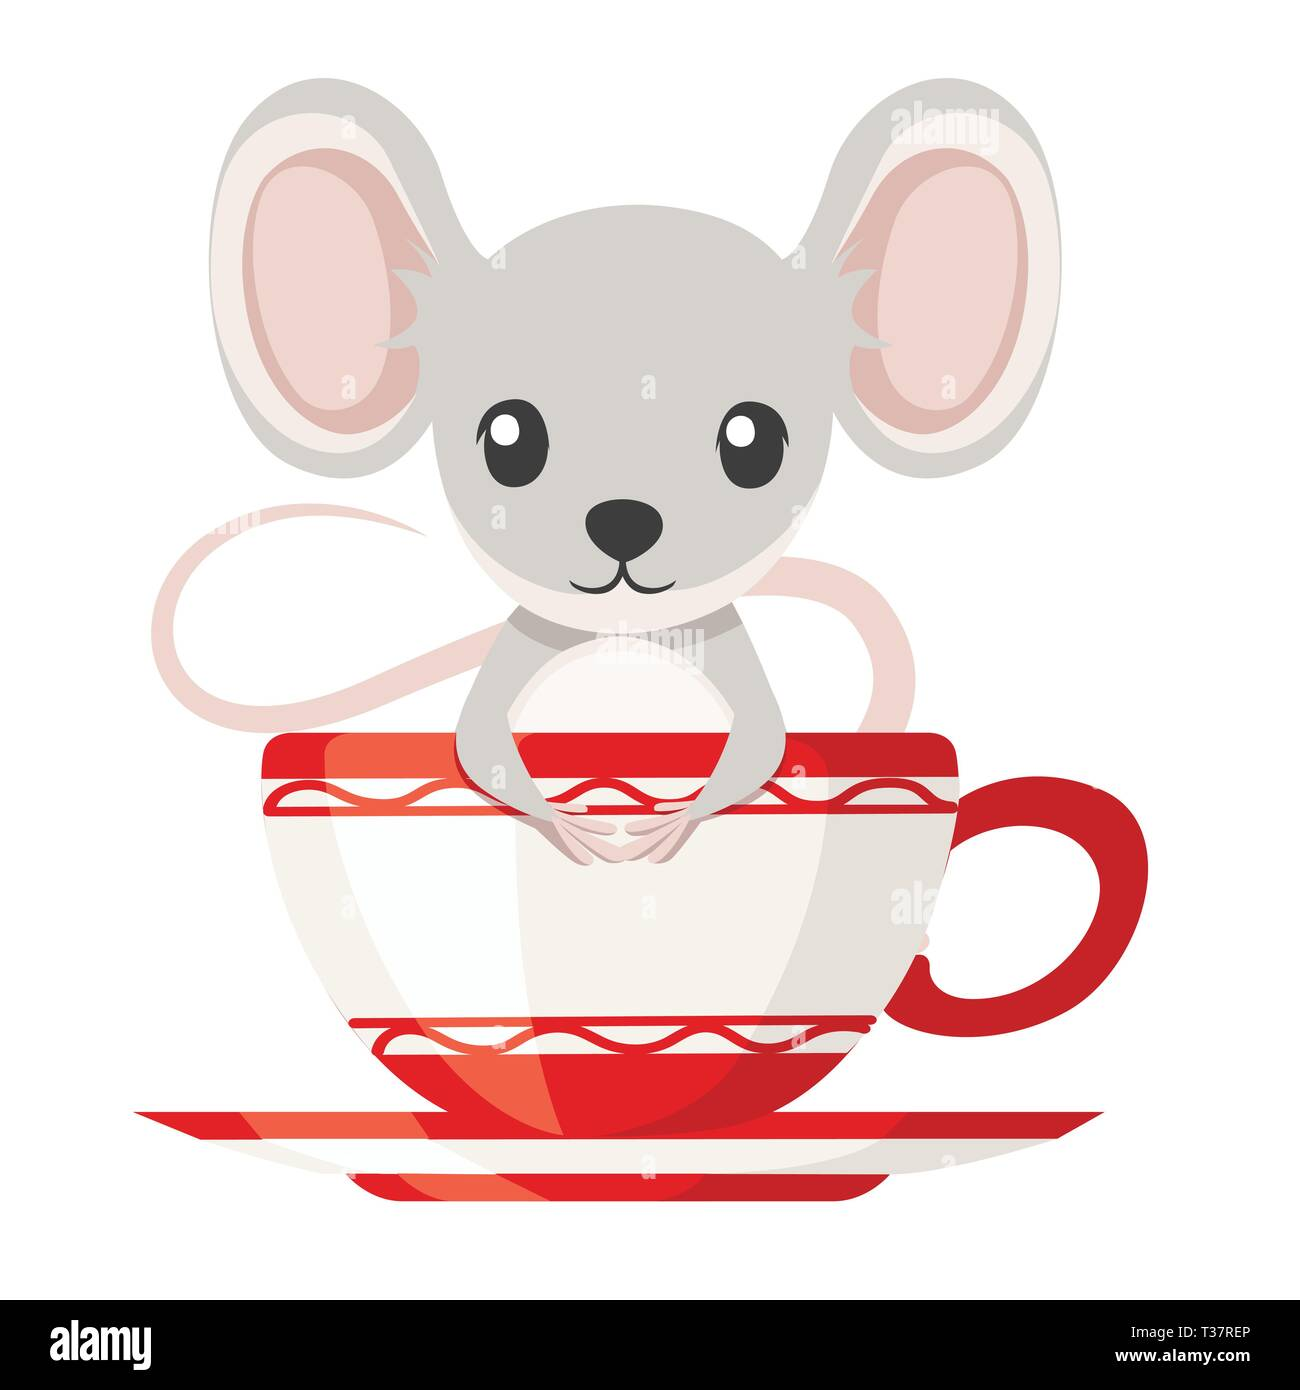 606f99d68d4de Cute little gray mouse is sitting in a mug. Cartoon animal character  design. Flat